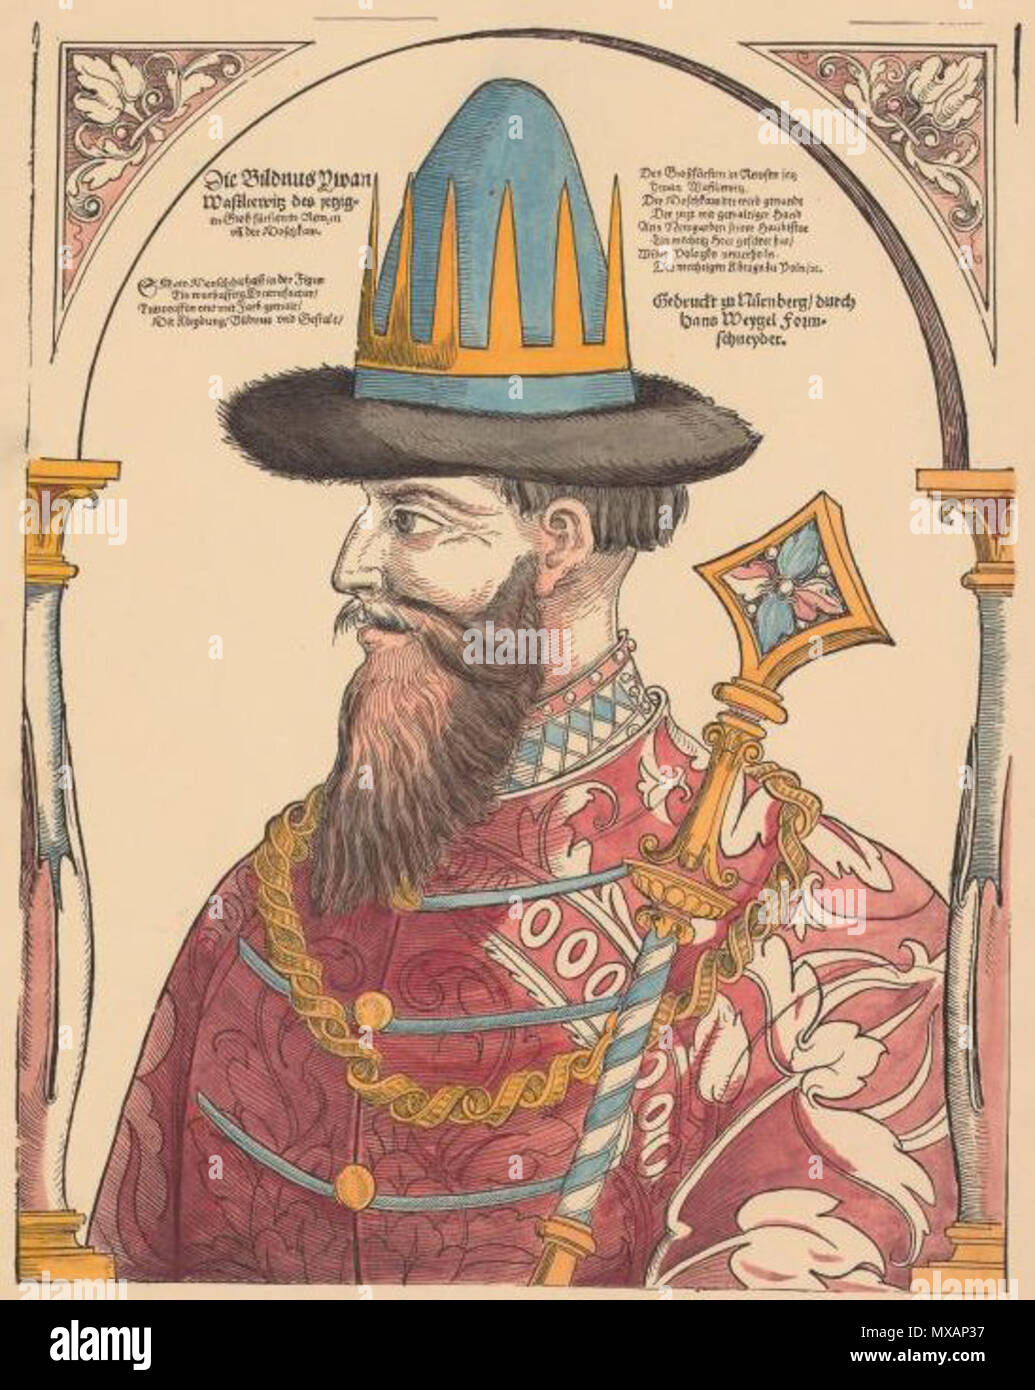 . English: Ivan IV the Terrible portrait by Weigel 1882 . 26 April 2012. Wiegel 1882 302 Ivan IV the Terrible portrait by Weigel 1882 - Stock Image